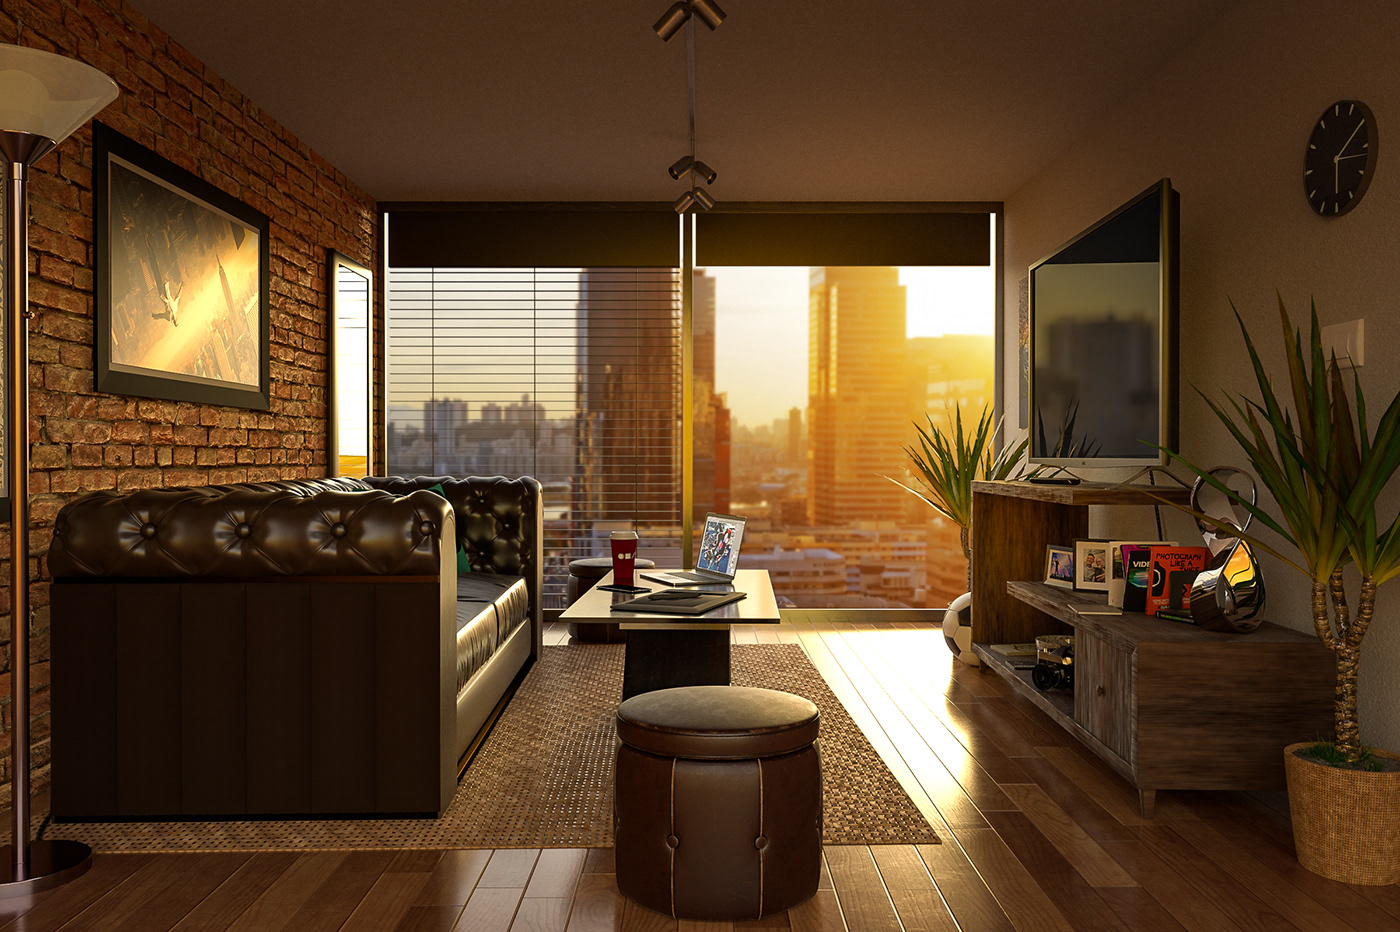 Contemporary Living Space - 3D Scene in Dimension CC on Behance